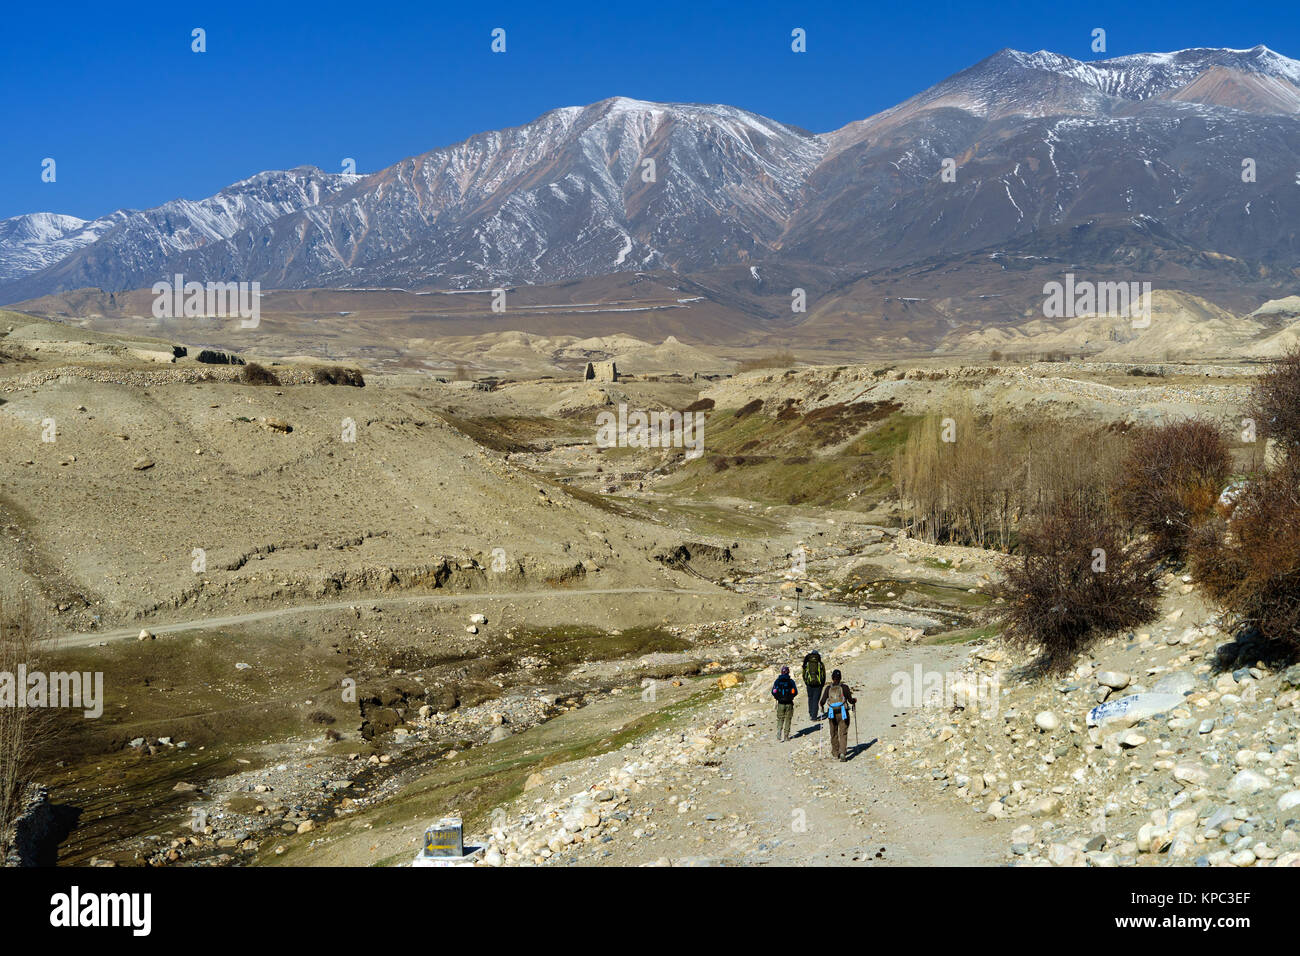 Trekkers exploring the Upper Mustang region near Lo Manthang, Nepal. - Stock Image